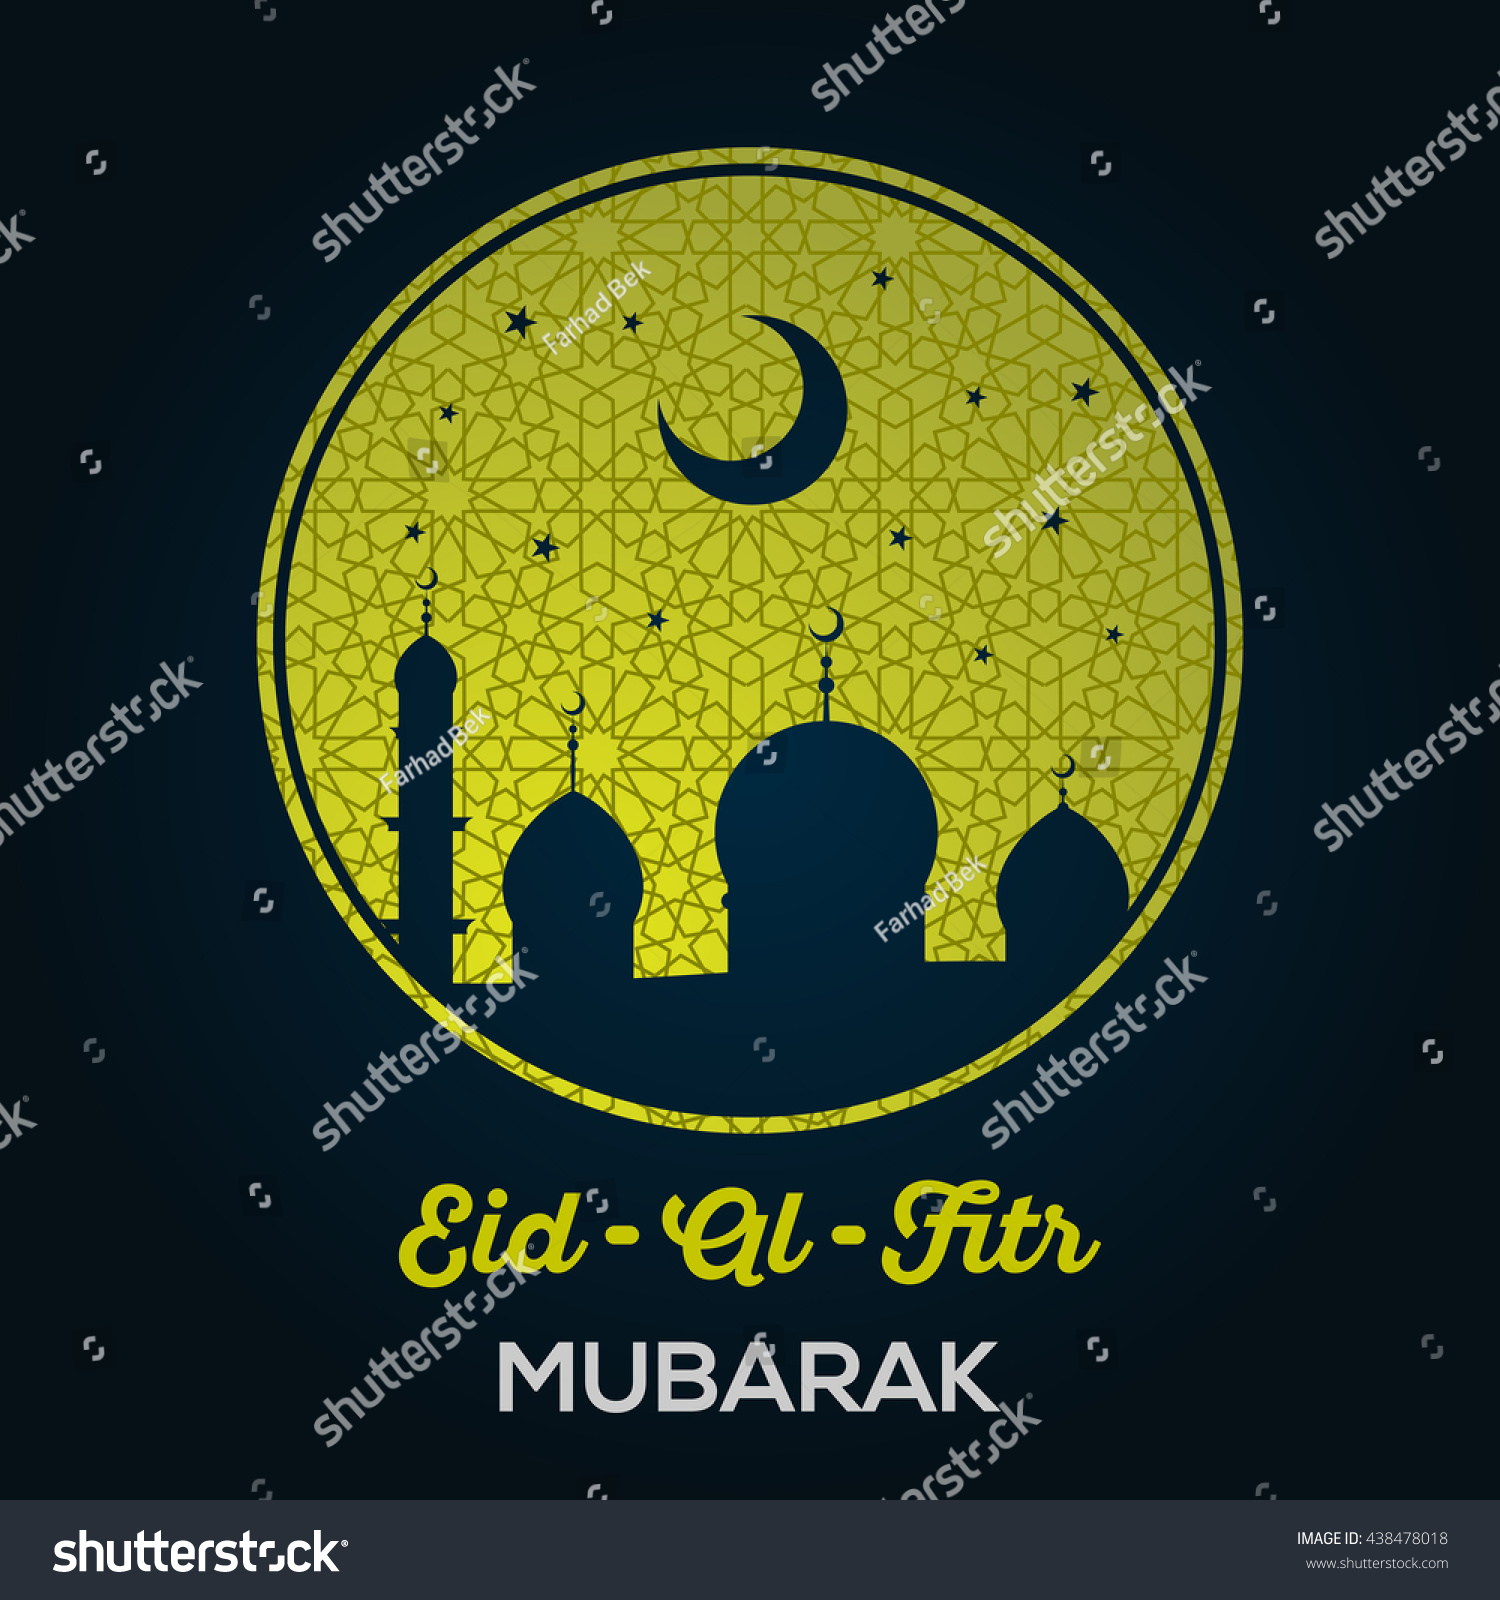 Eid al fitr mubarak greeting card stock vector 438478018 shutterstock eid al fitr mubarak greeting card or banner with mosques stars moon and m4hsunfo